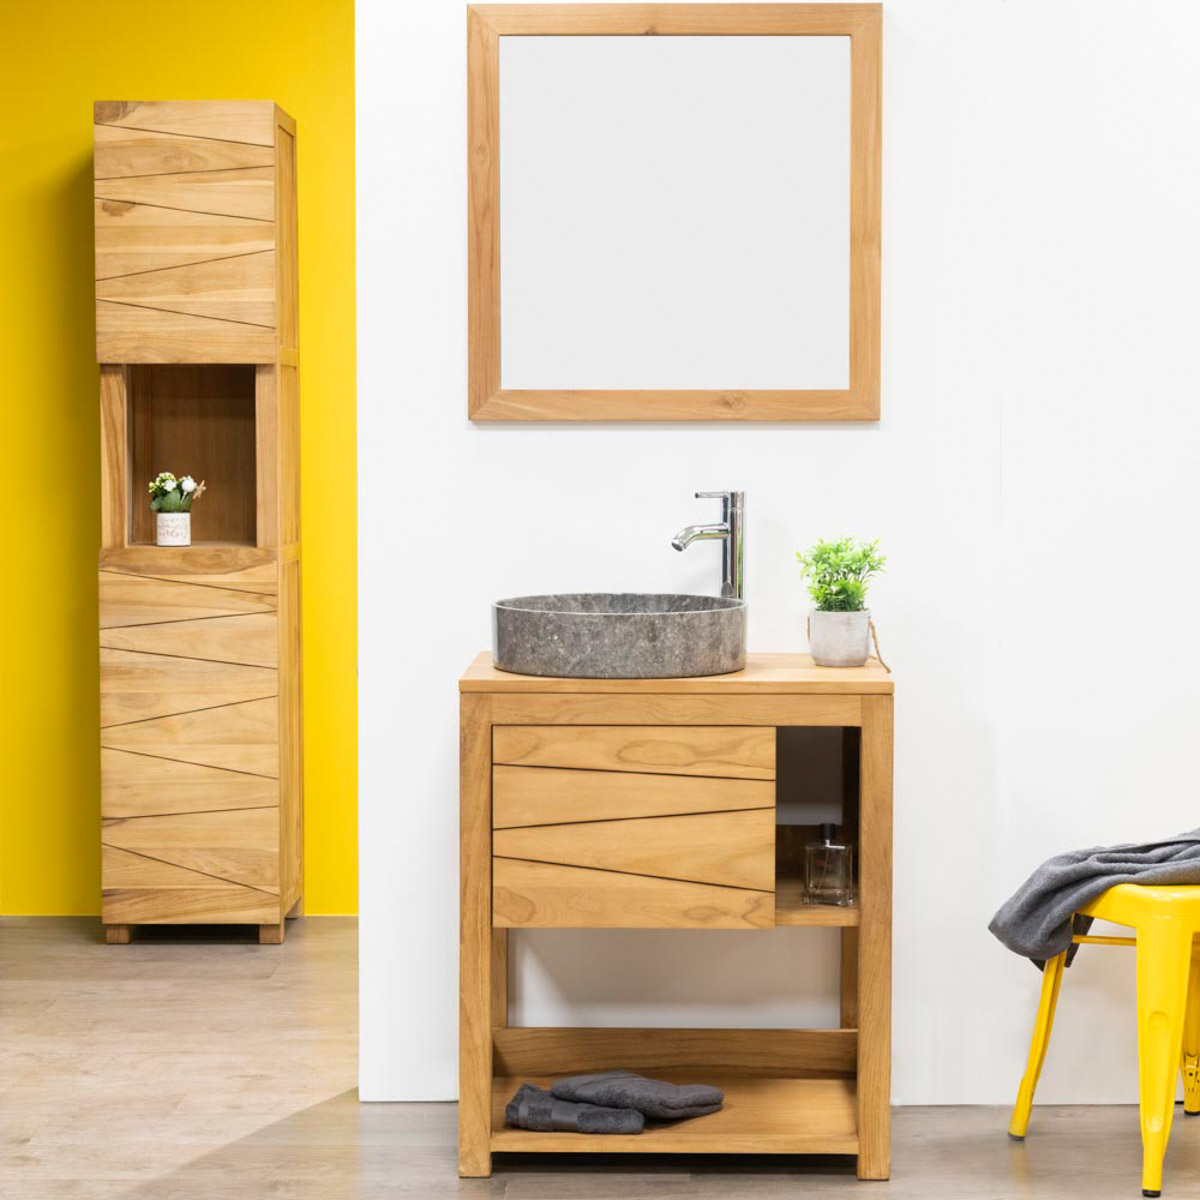 Meuble sous vasque simple vasque en bois teck massif cosy rectangle naturel l 67 cm - Meuble salle de bain en promotion ...